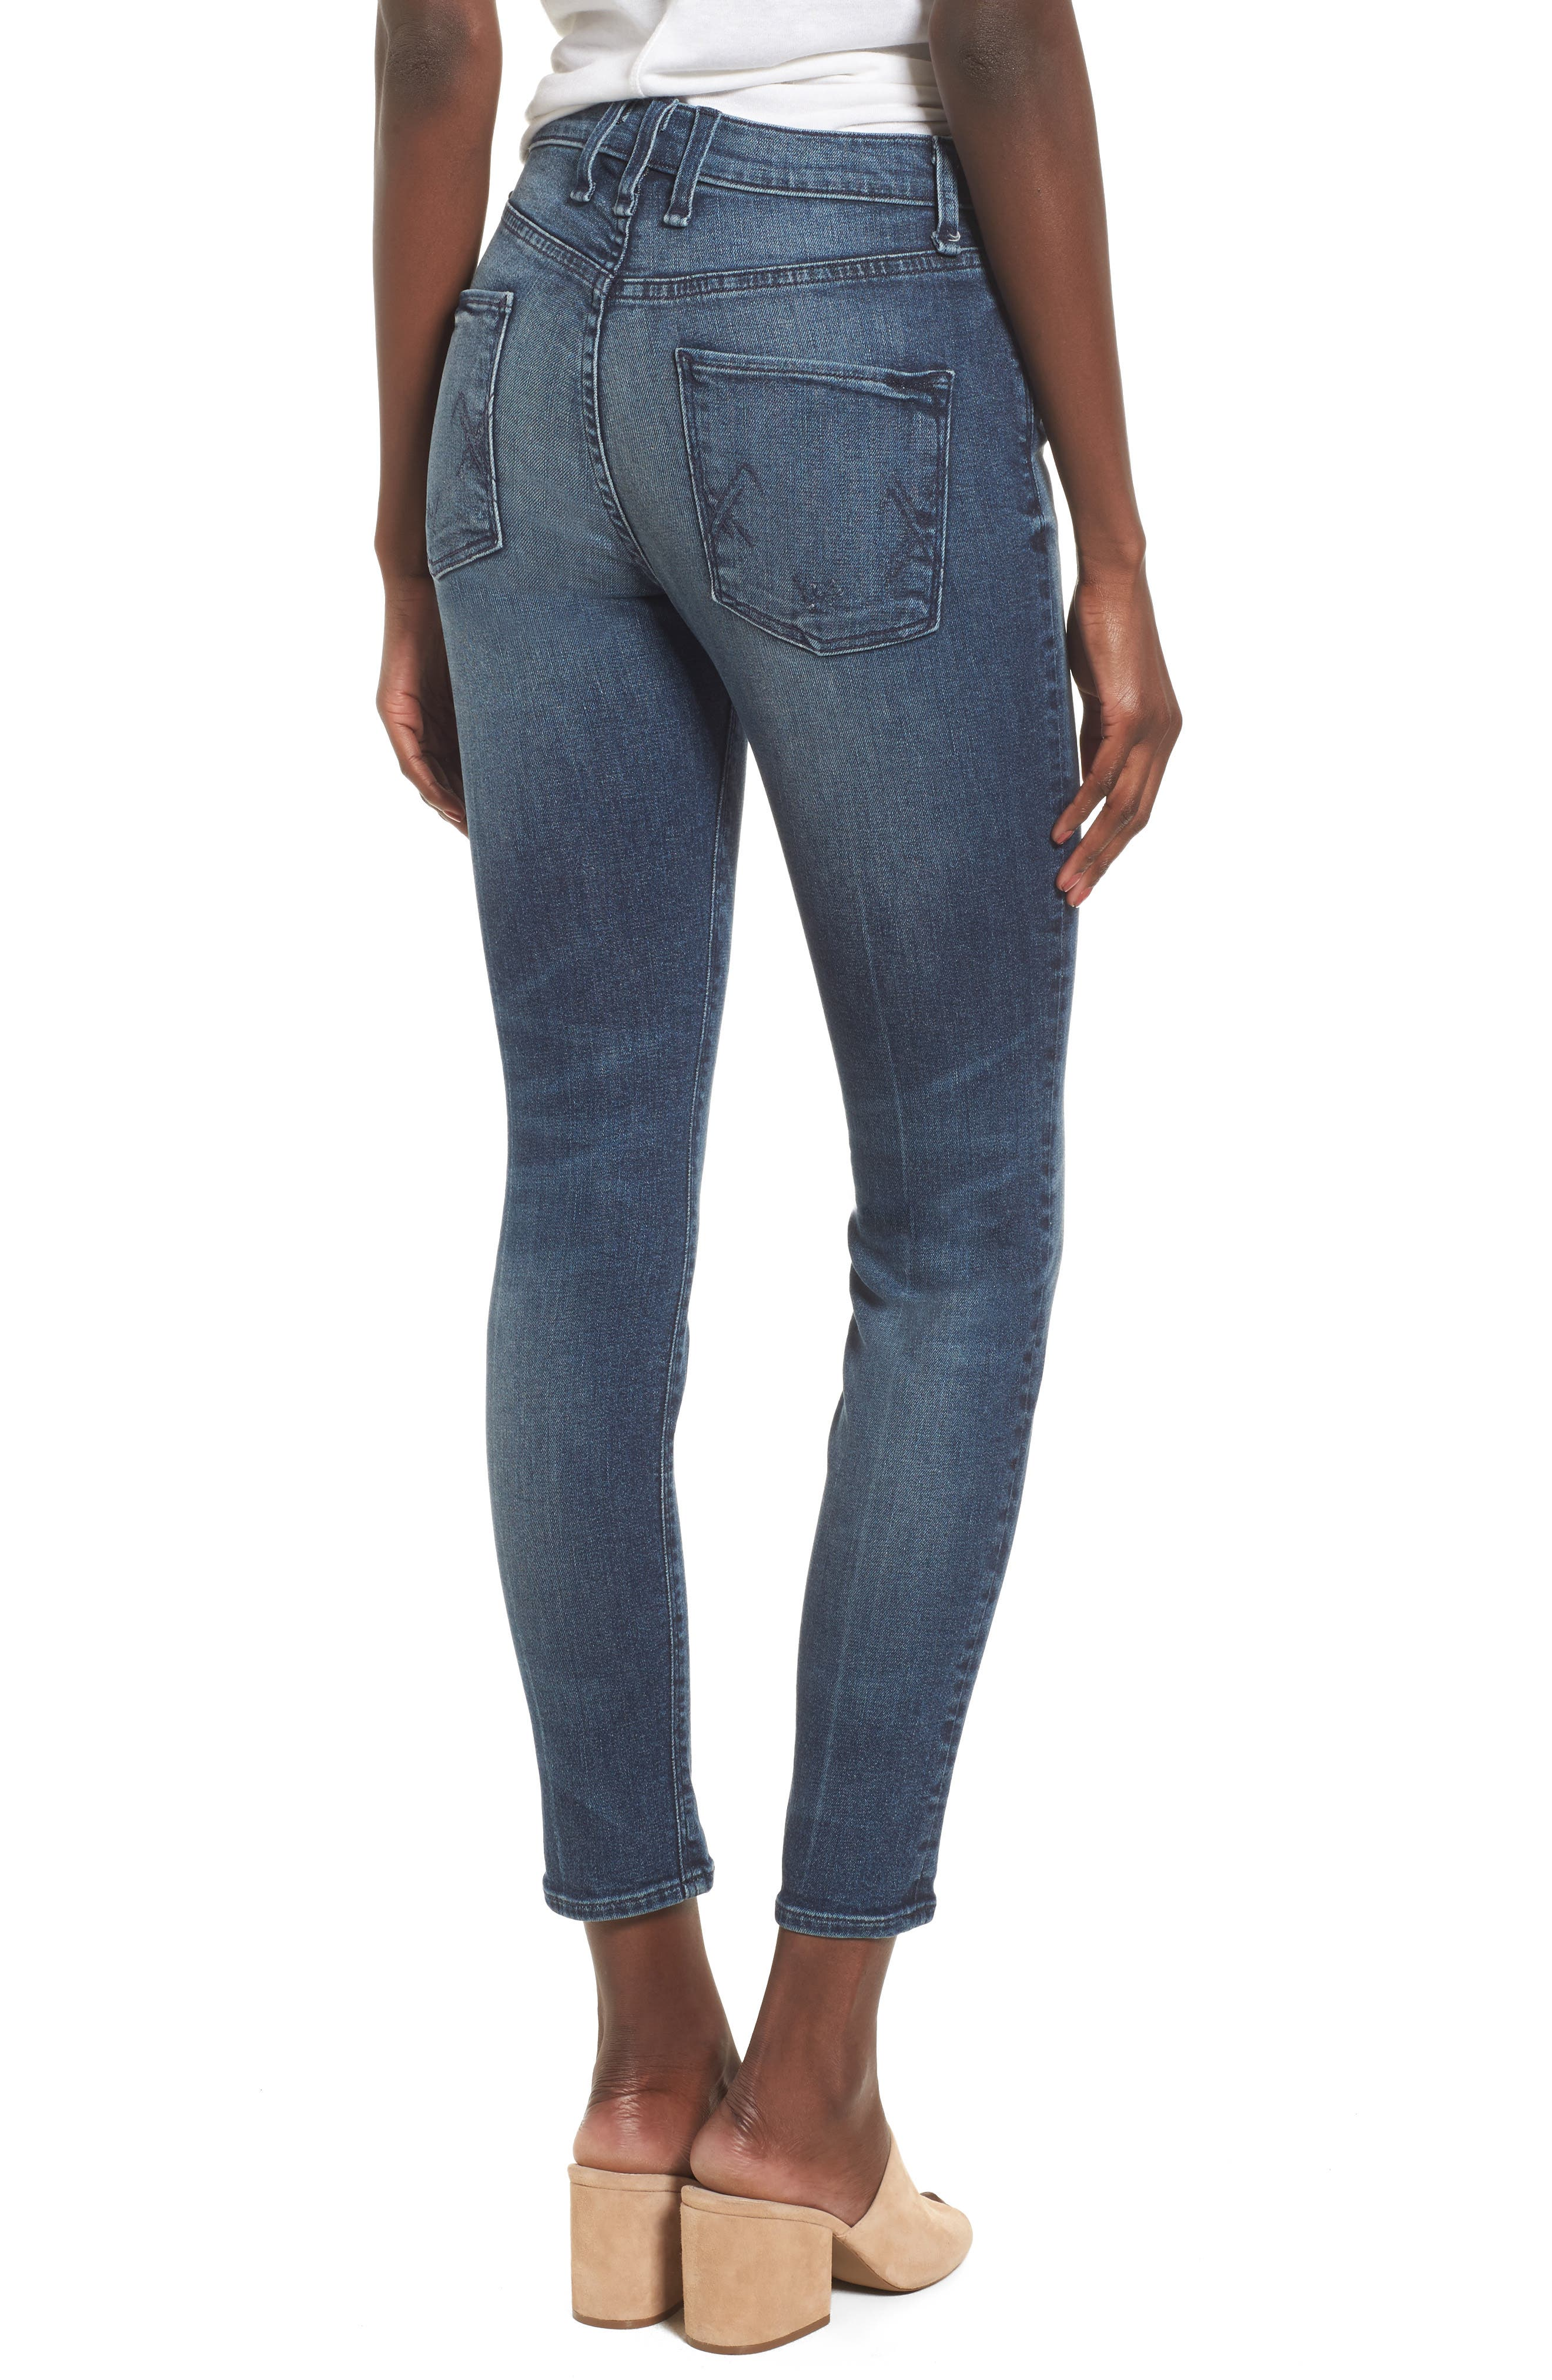 Alternate Image 2  - McGuire Newton High Waist Skinny Jeans (Isle in the Sky)